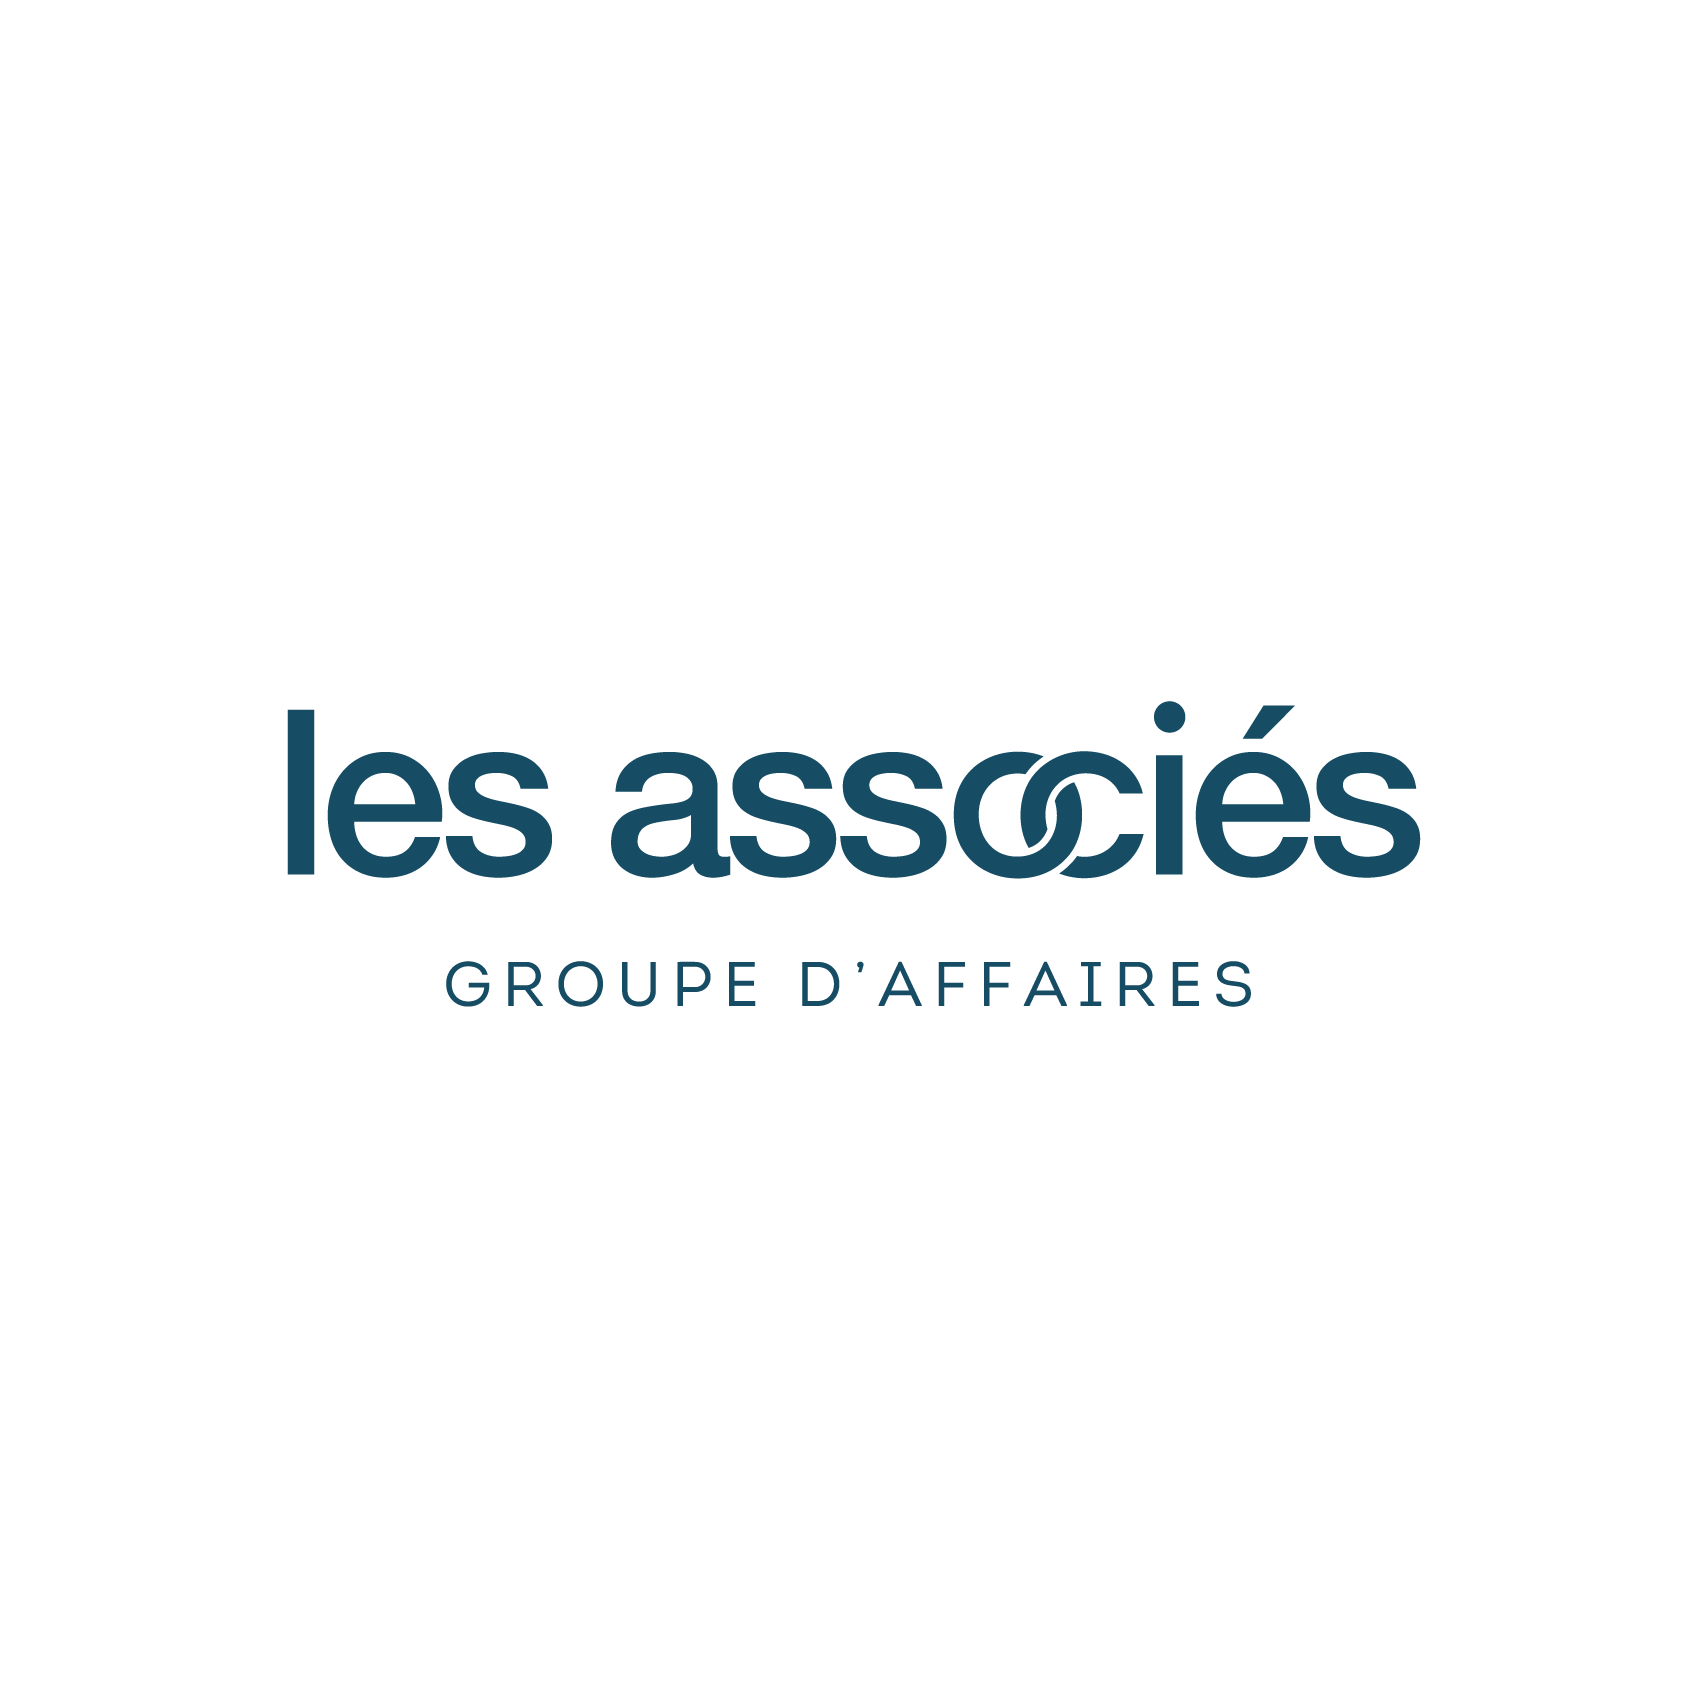 MlleRouge_logos_LesAssocies